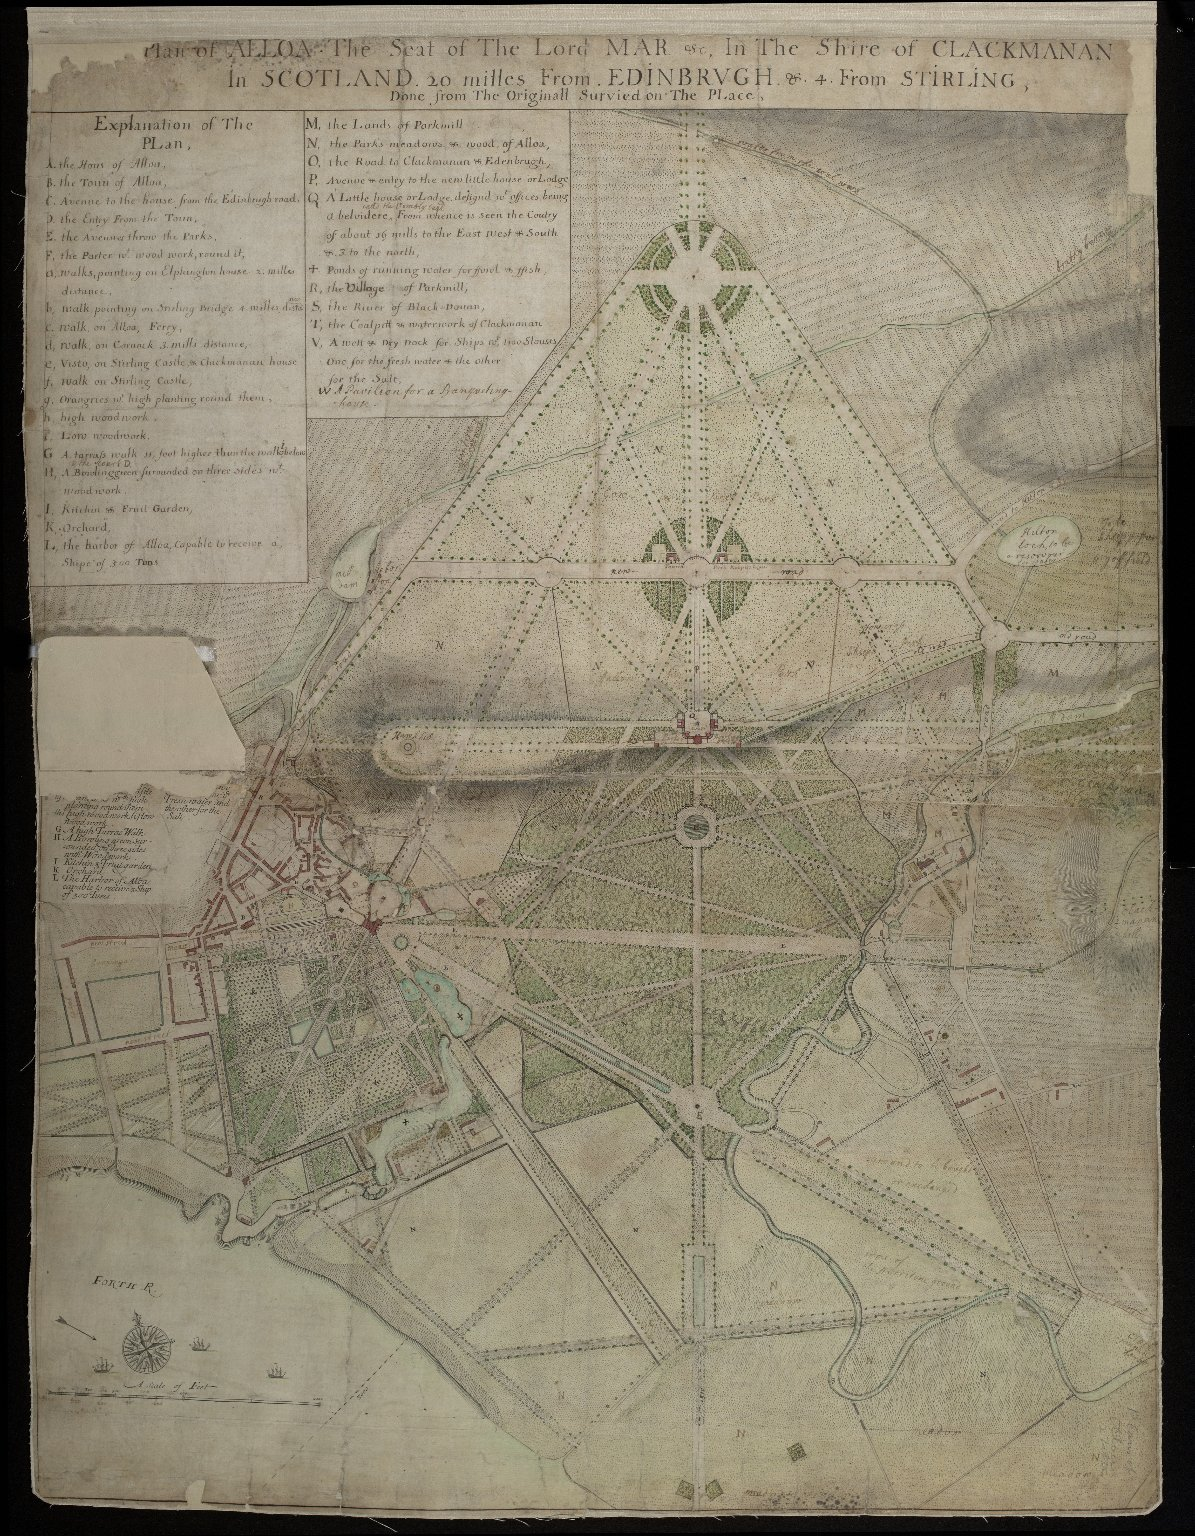 Plan of Alloa The Seat of The Lord Mar etc. In The Shire of Clackmanan In Scotland 20 milles from Edinbrugh & 4 From Stirling [2 of 2]